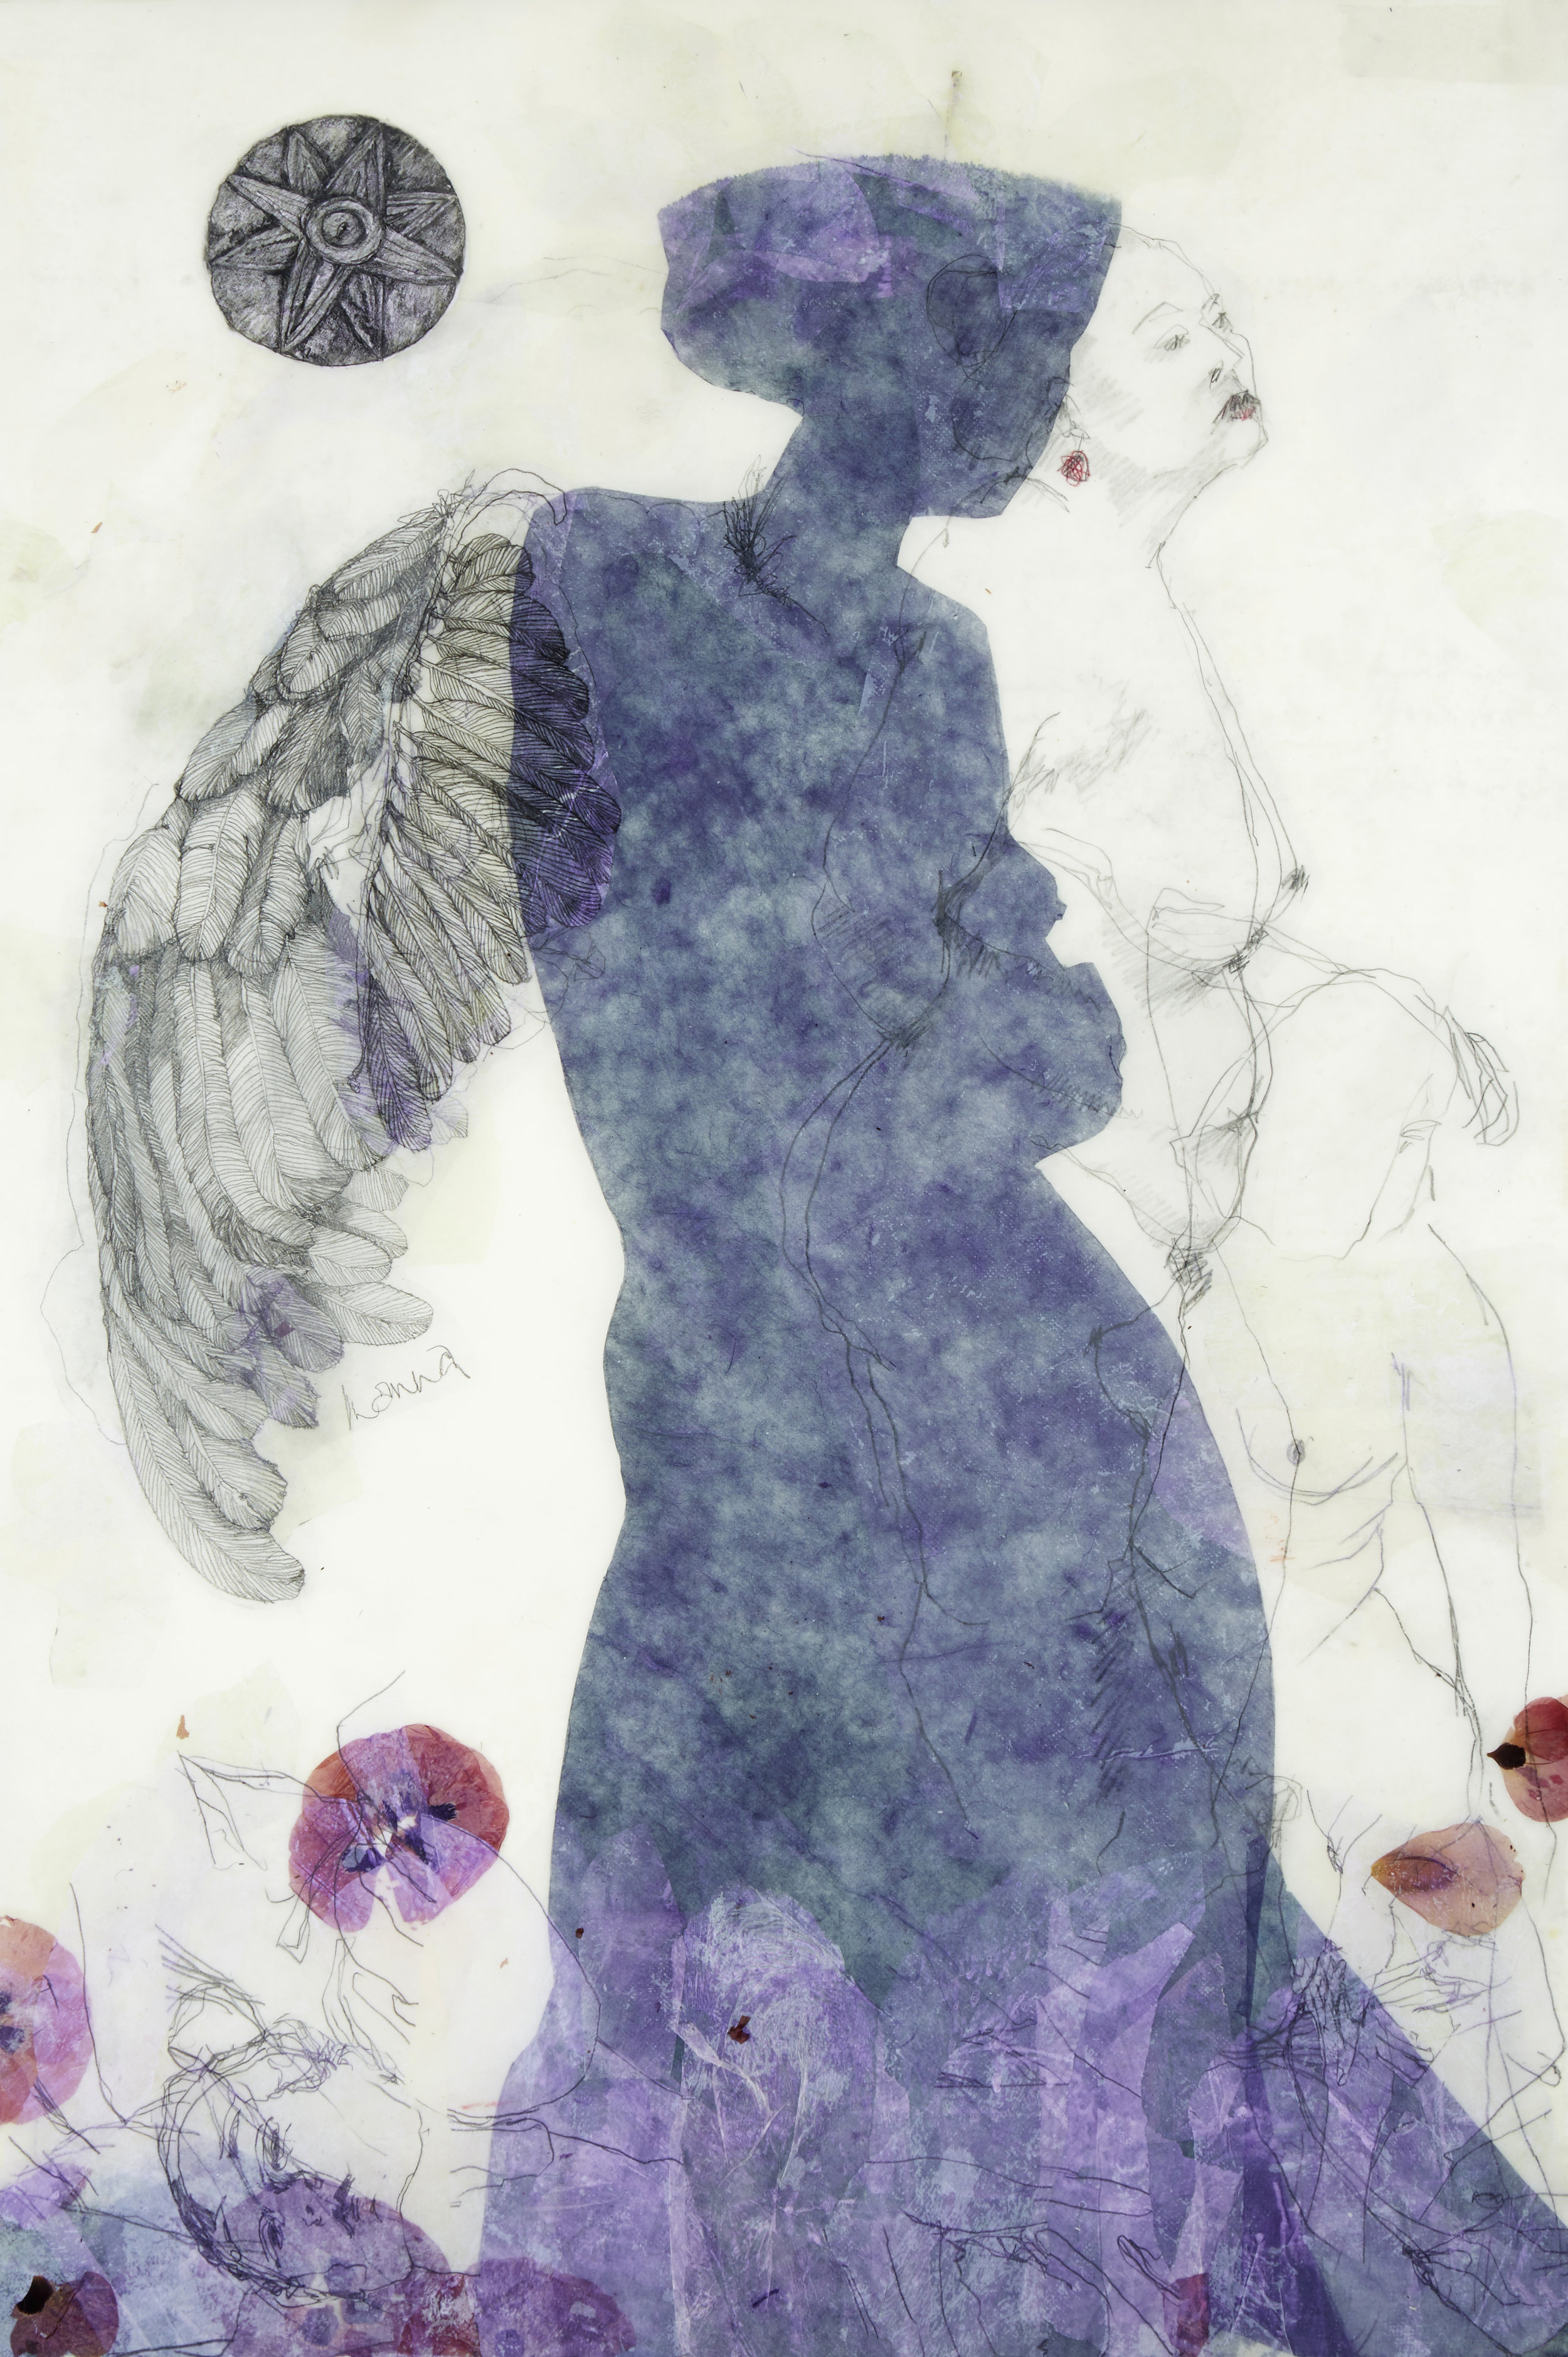 'Between Heaven and Earth' , encaustic, drawing, etching, collage on Kozo paper, 2015, 98x38cm.